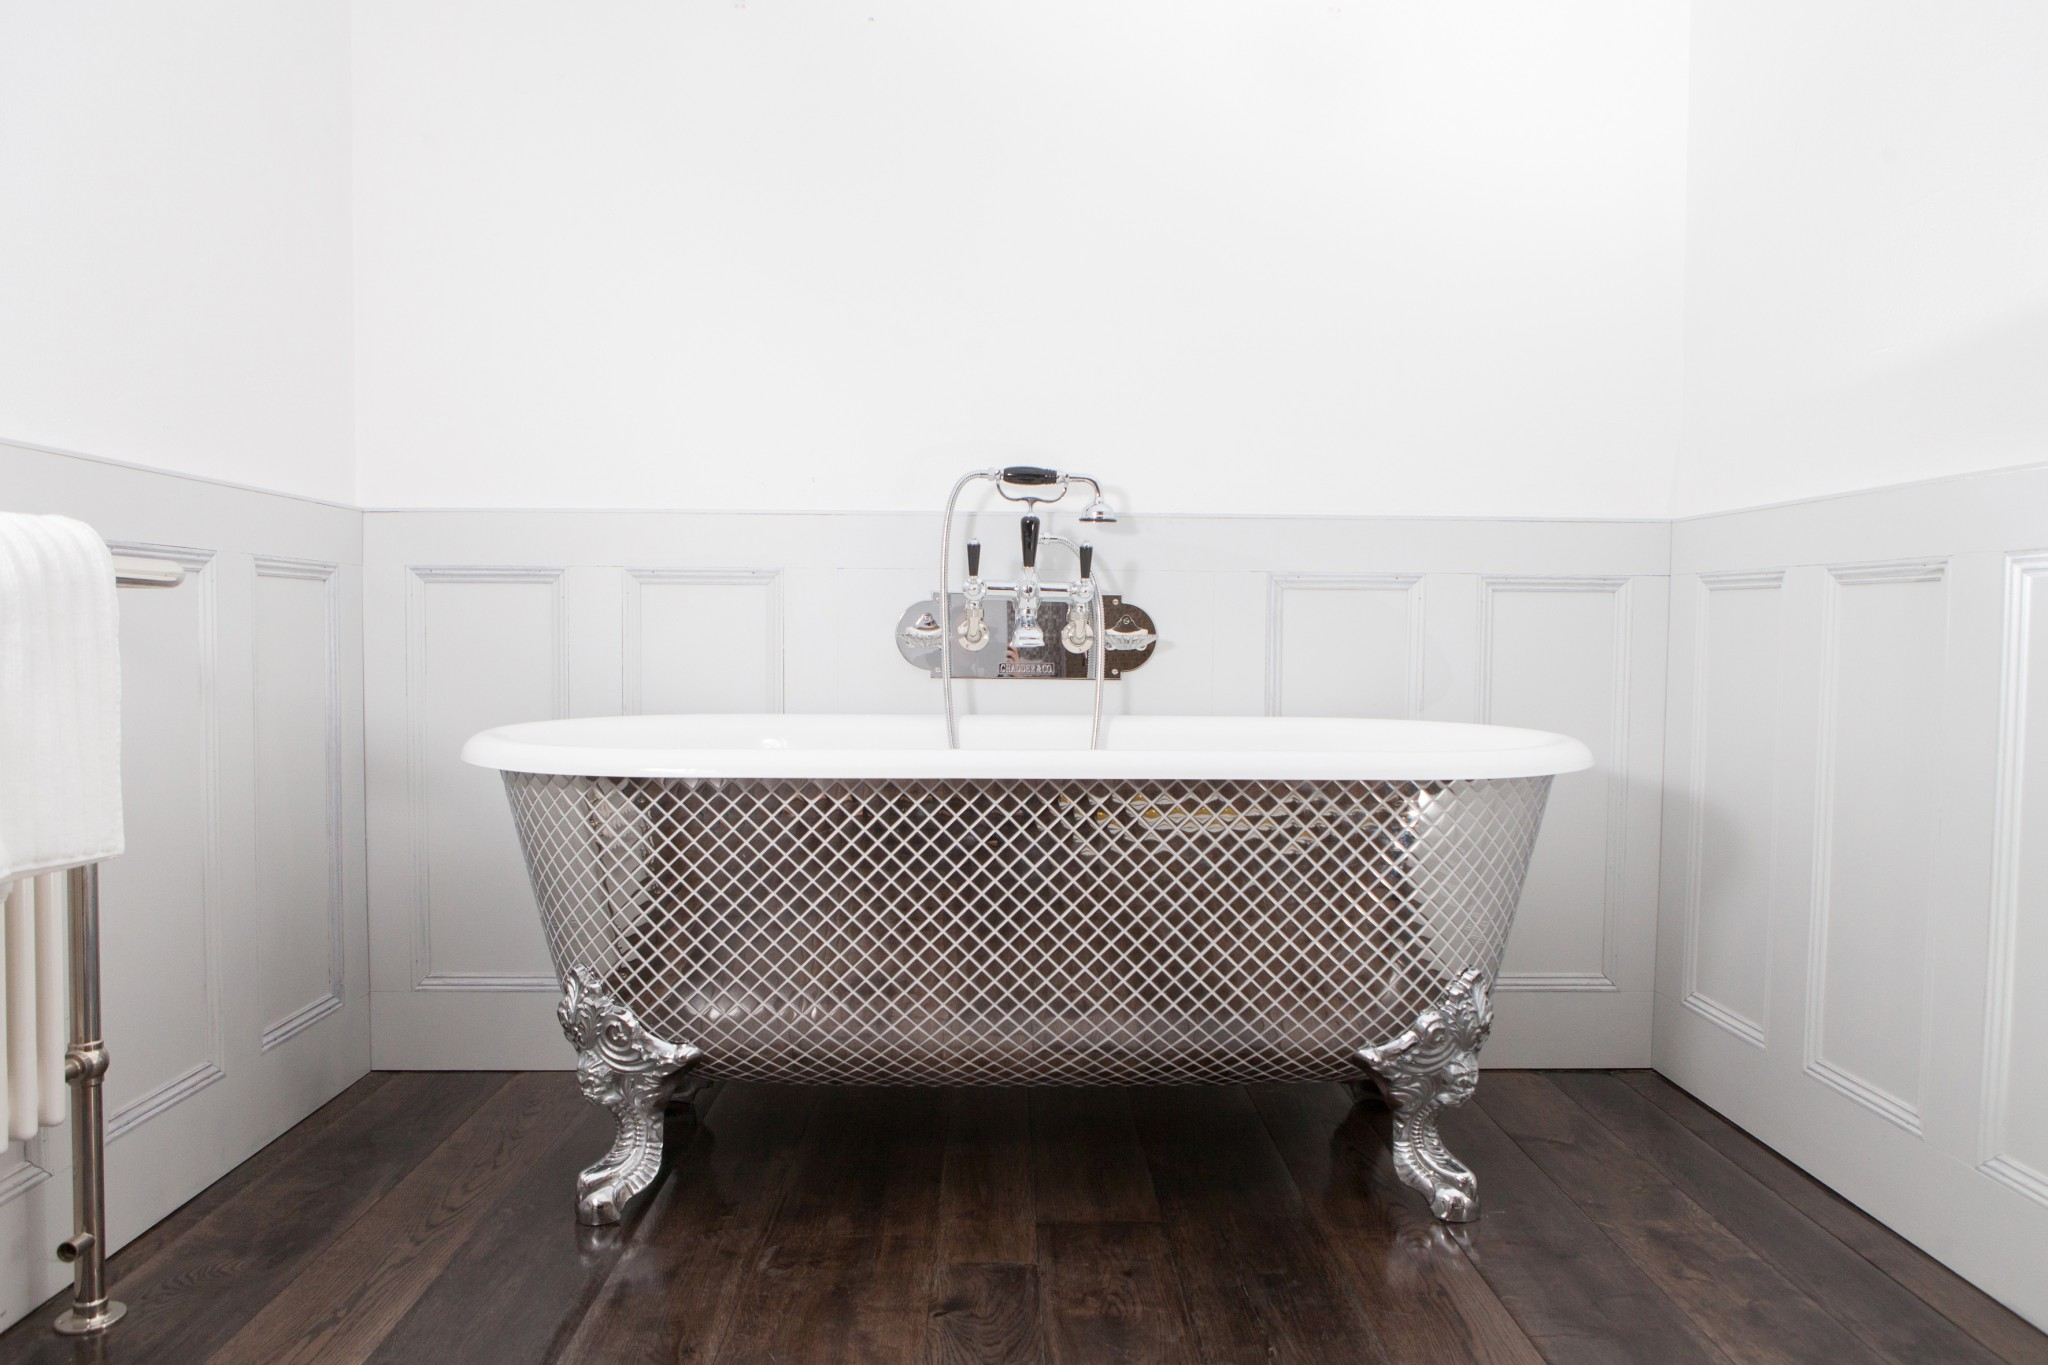 Blenheim Bath with Polished Metal Mosaic Exterior.